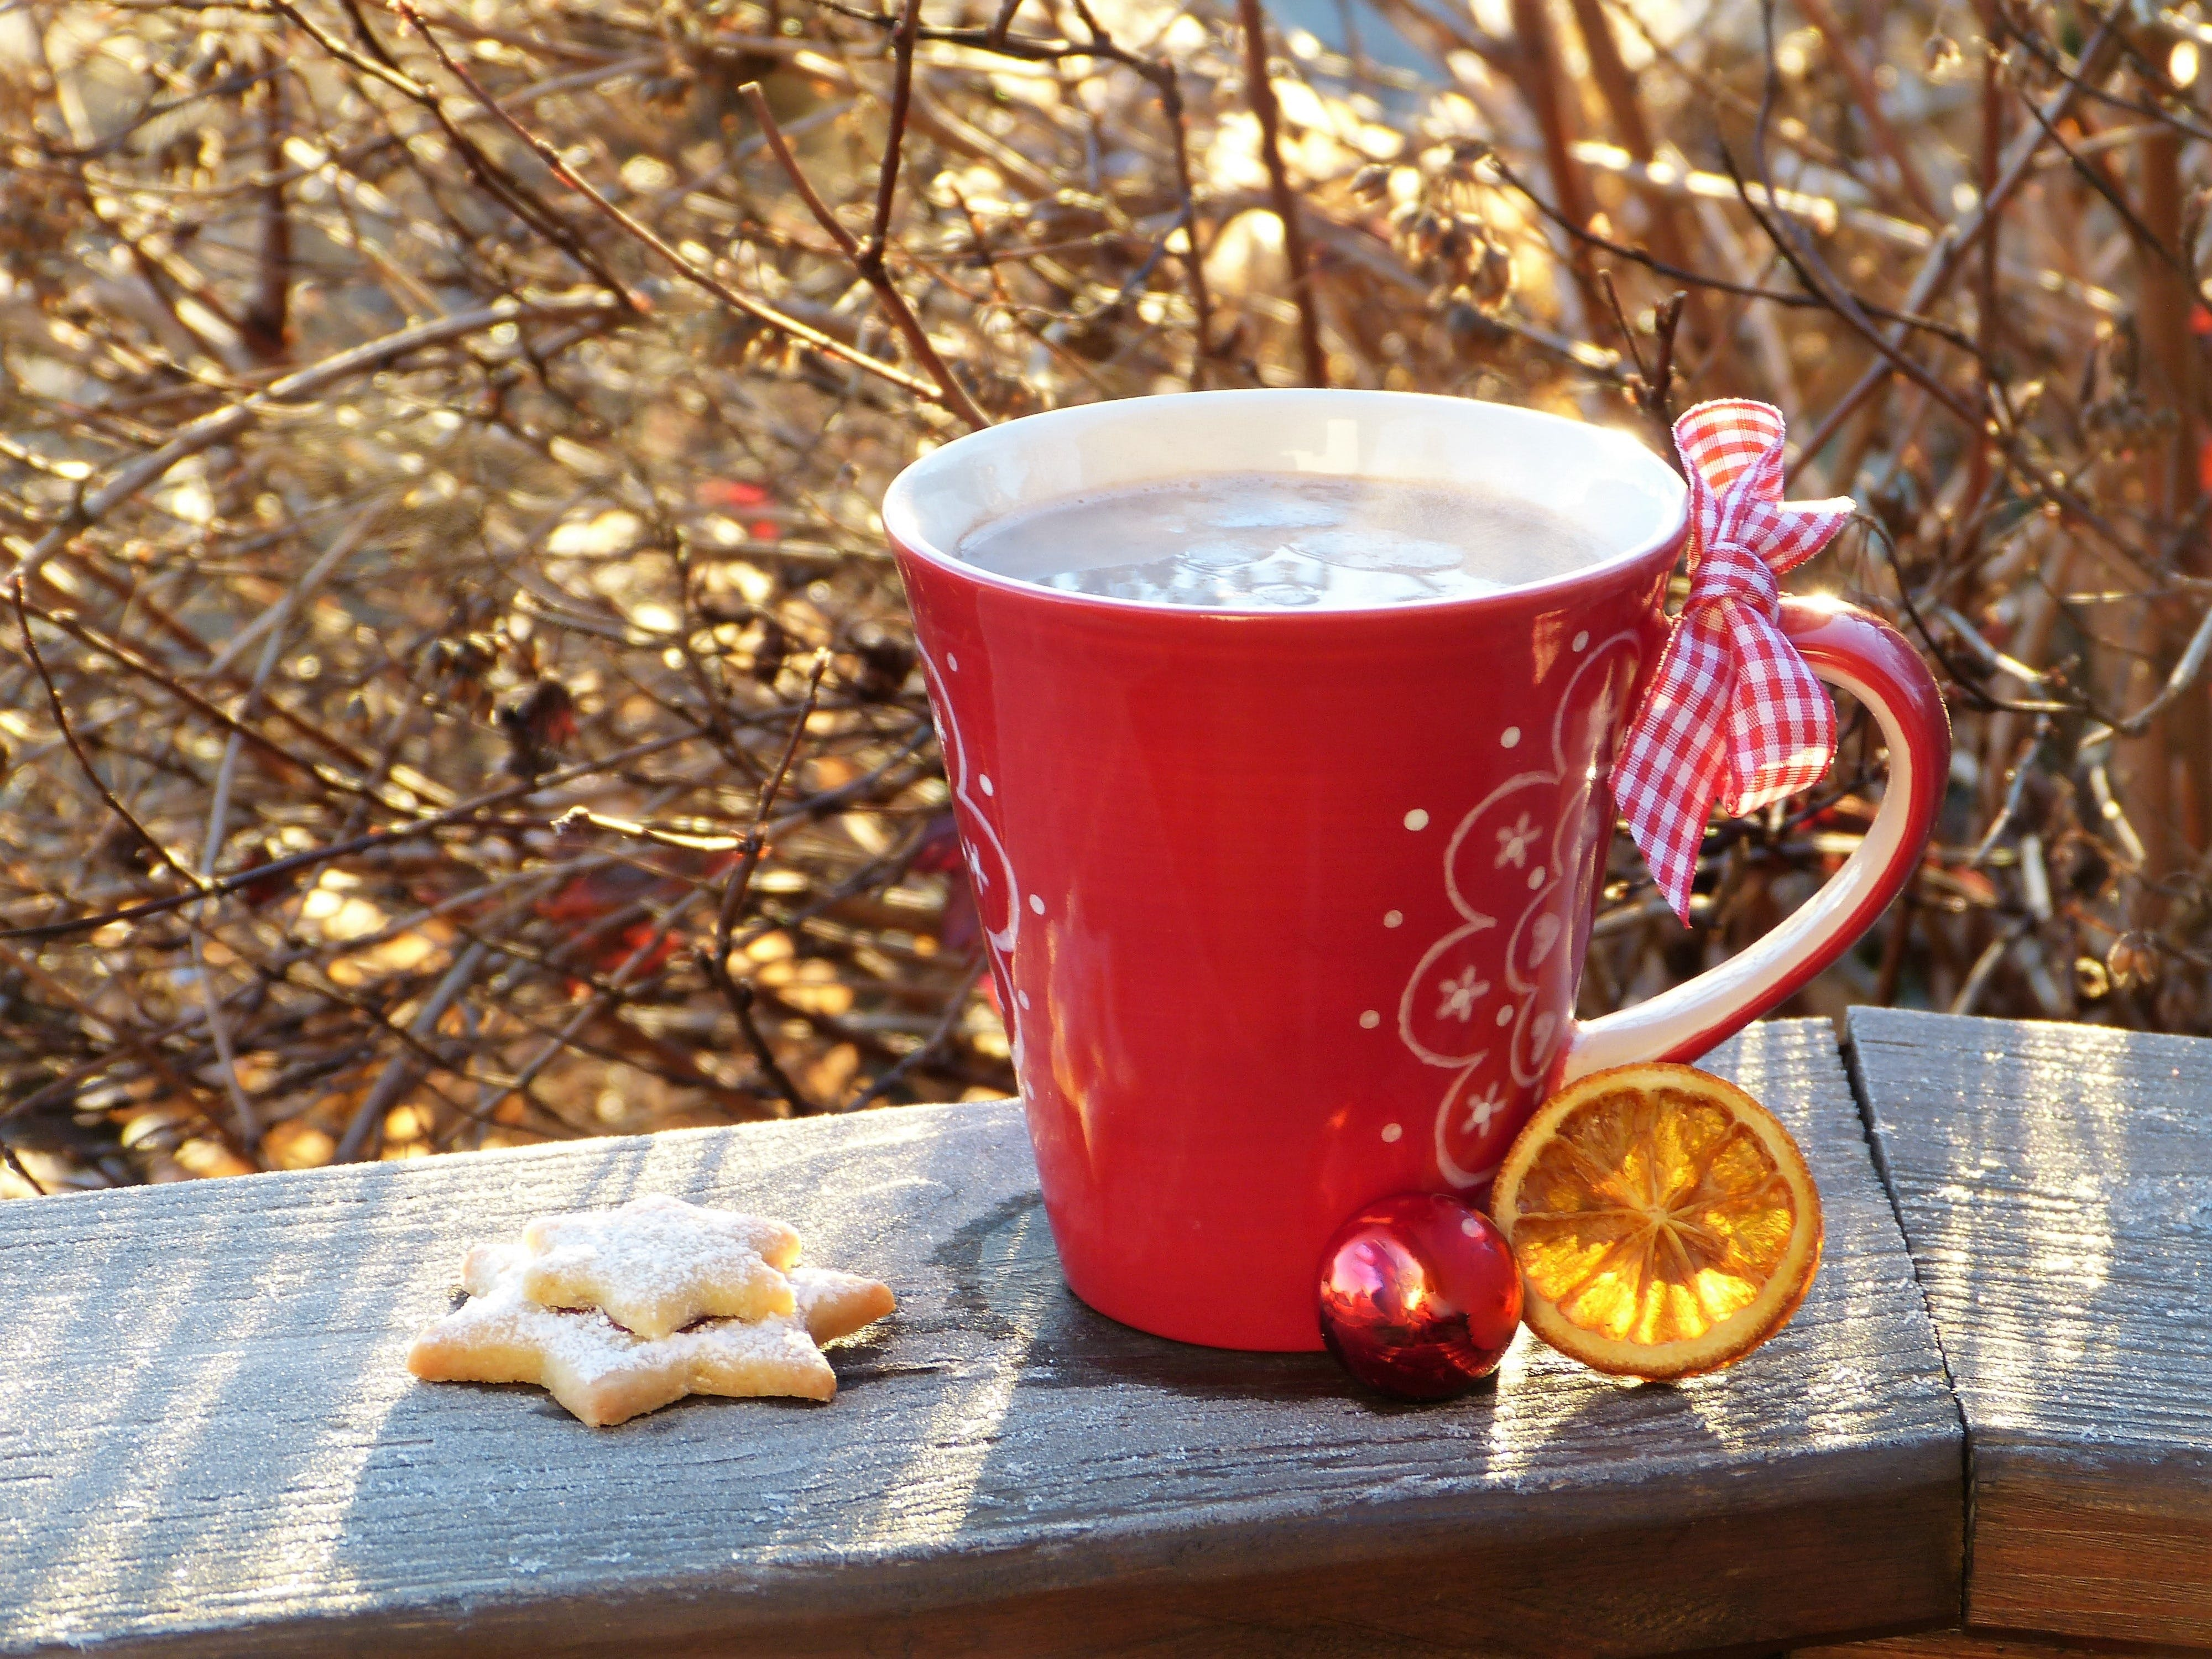 Red Ceramic Mug Beside Cookie on Brown Wooden Surface